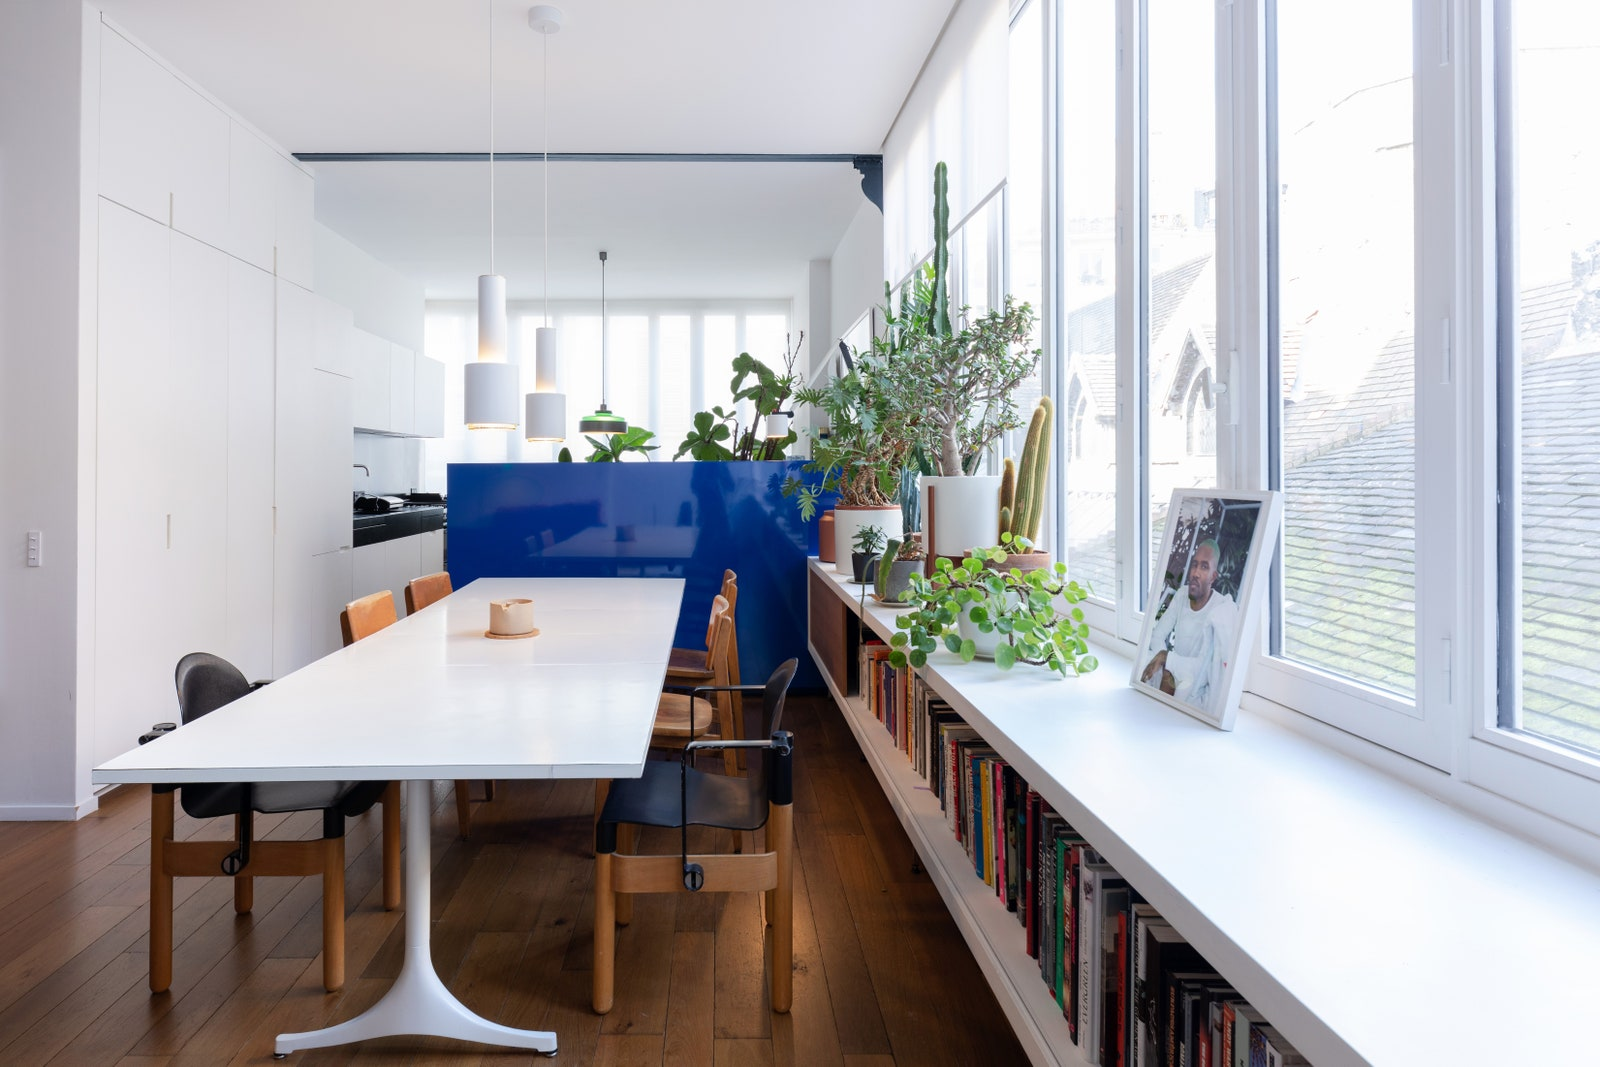 Yoann fell in love with theAlvar Aalto pendants above his dining table while shooting a music video in the Maison Louis...